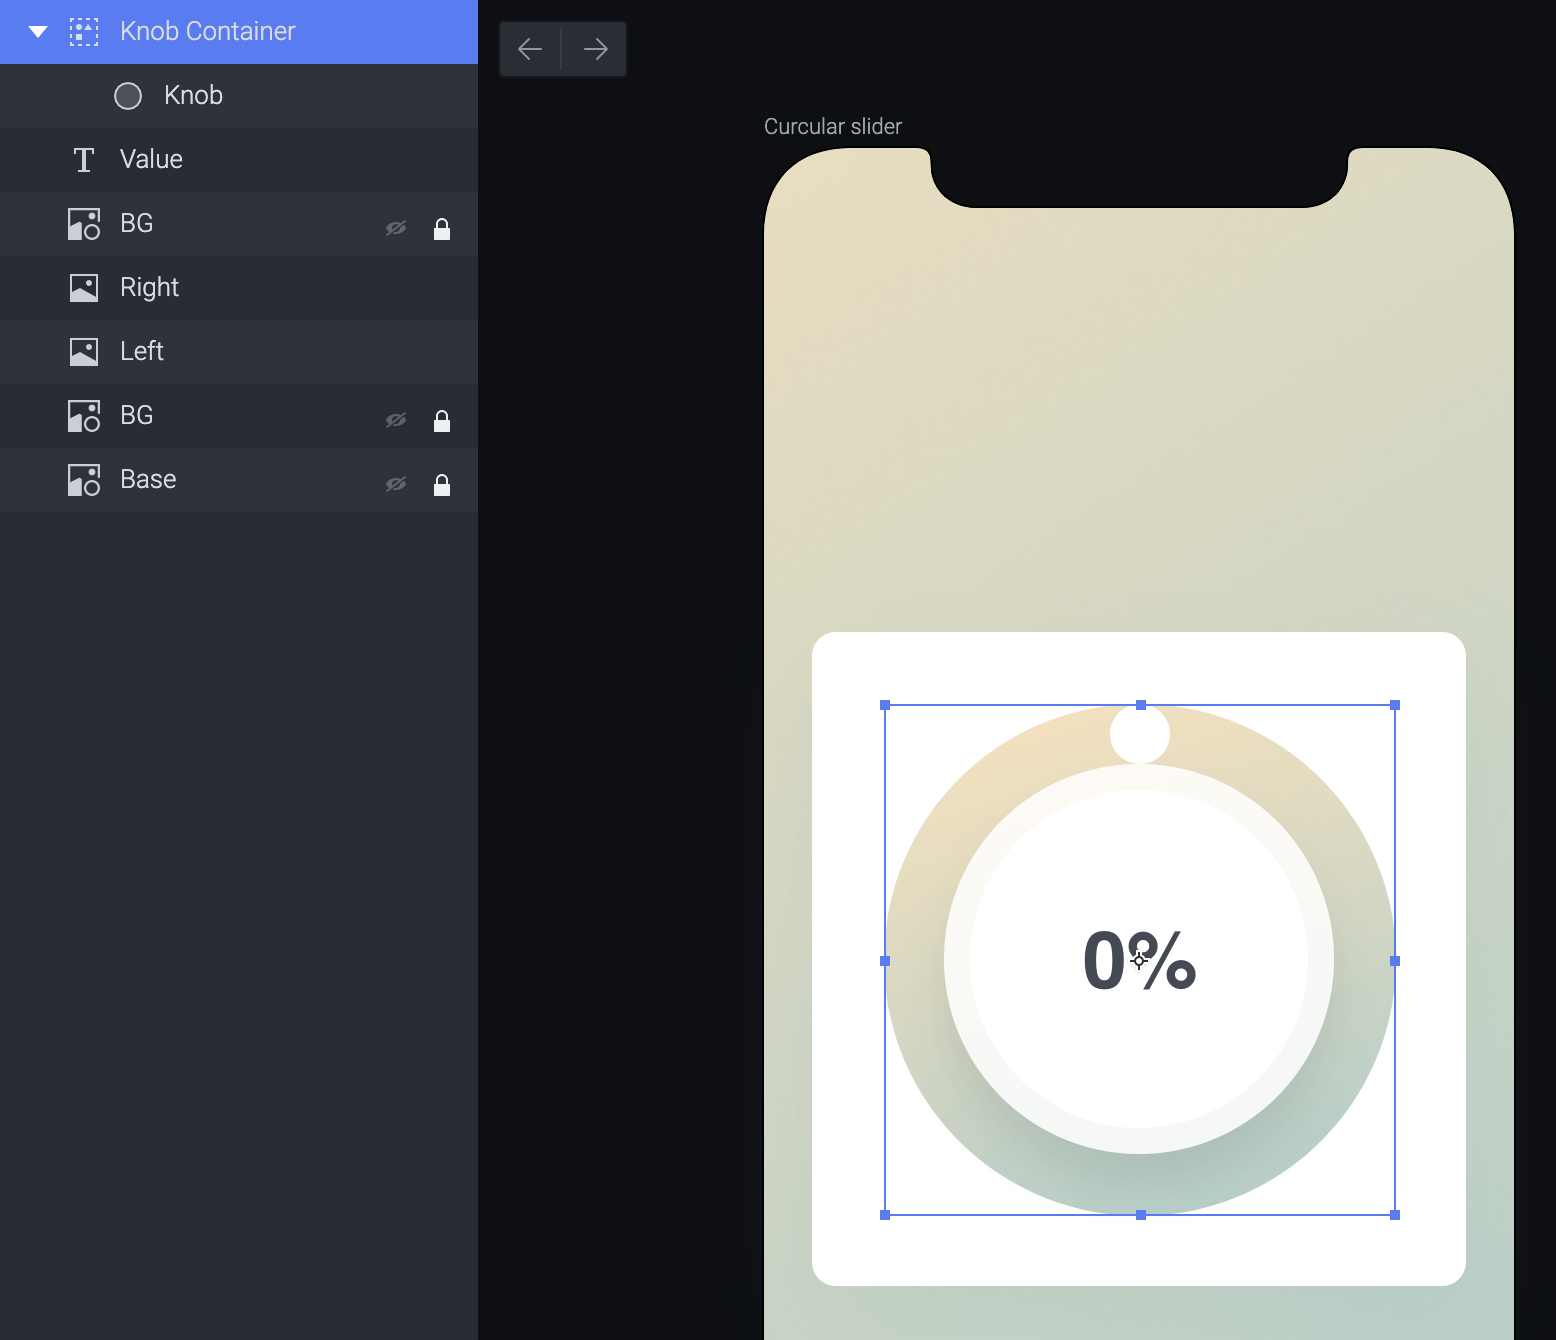 Create a container the same size as the radial dial